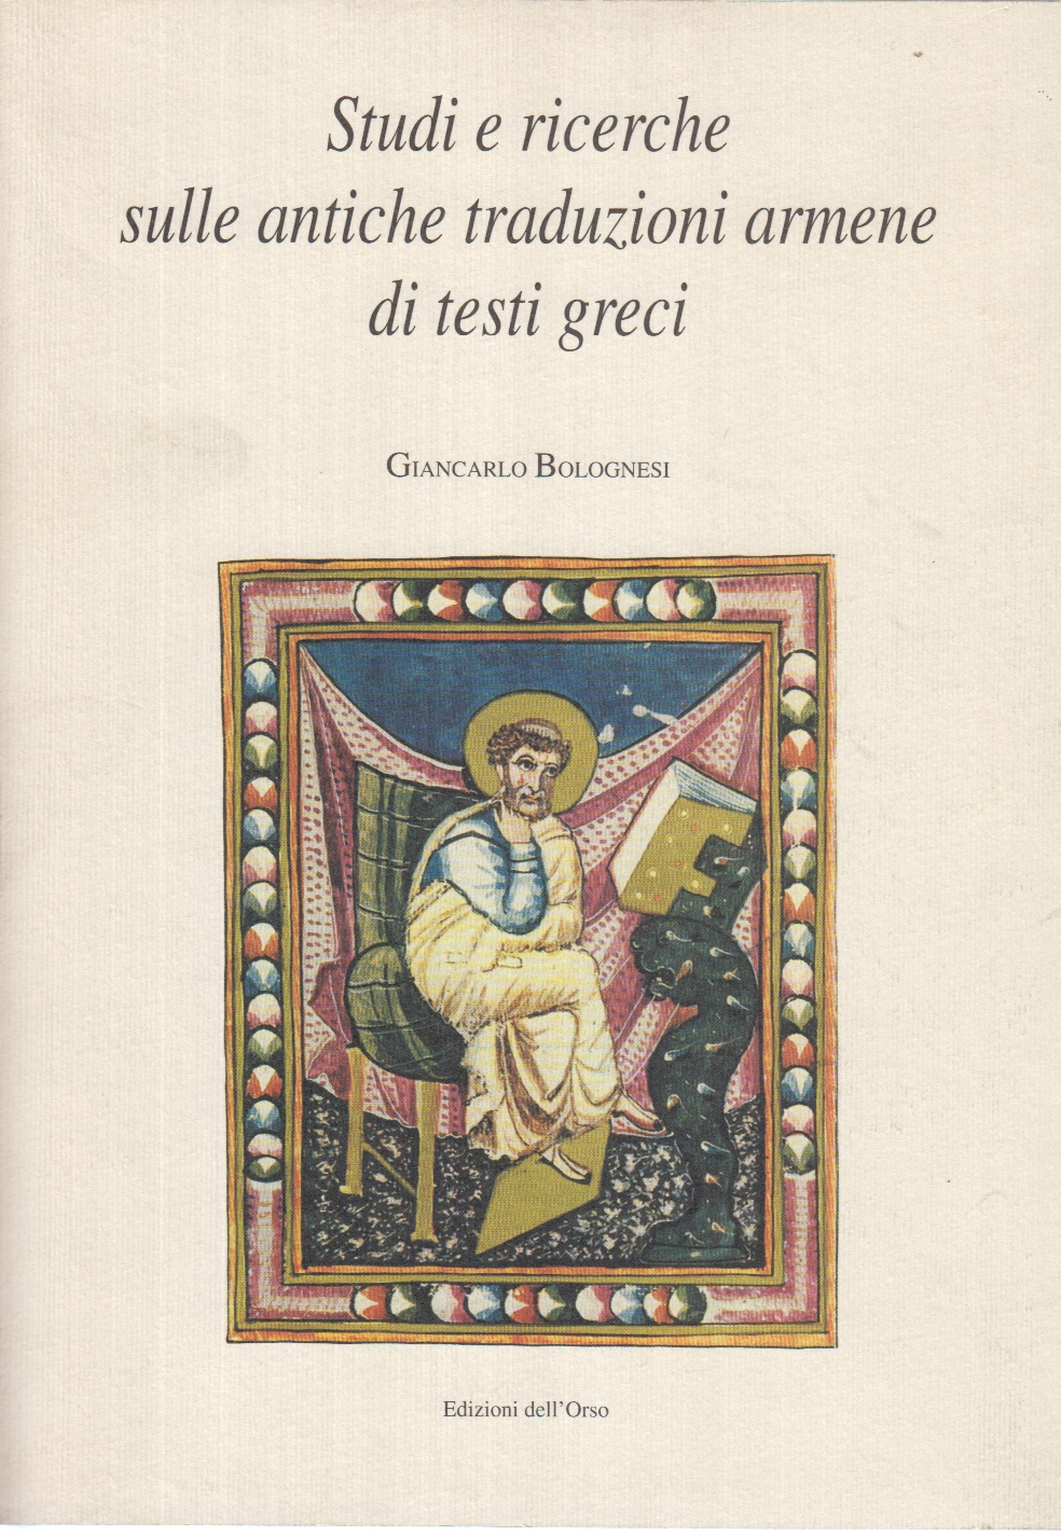 Studies and research on the ancient translations, the Armenian d, Giancarlo Bolognesi